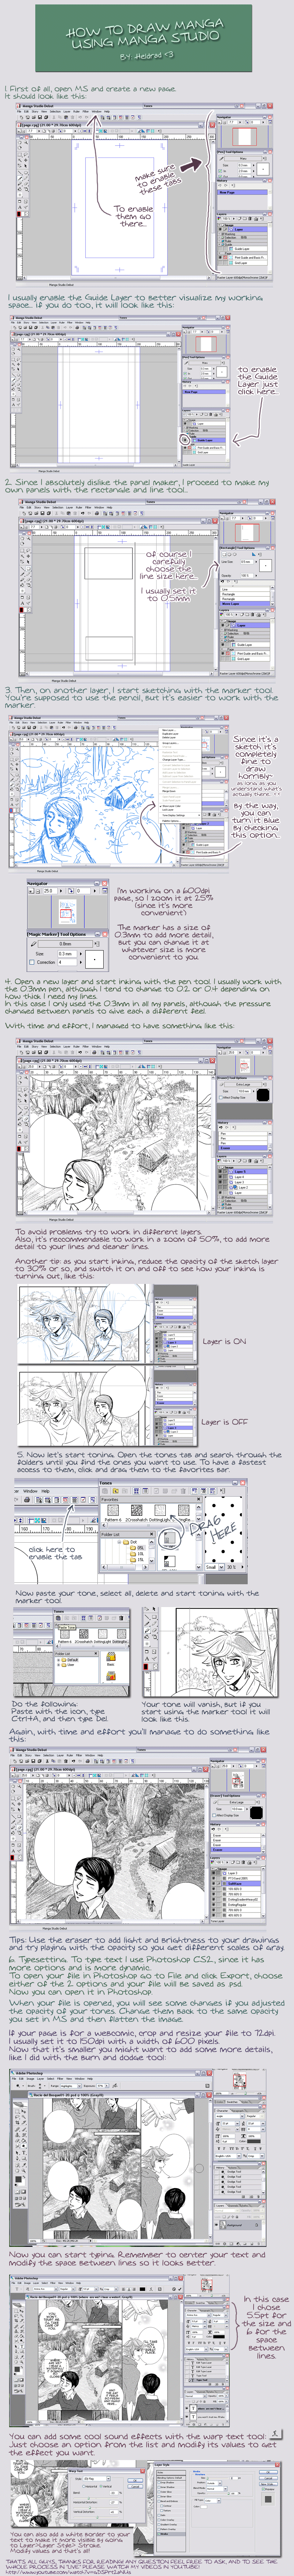 manga studio tutorial by Heldrad